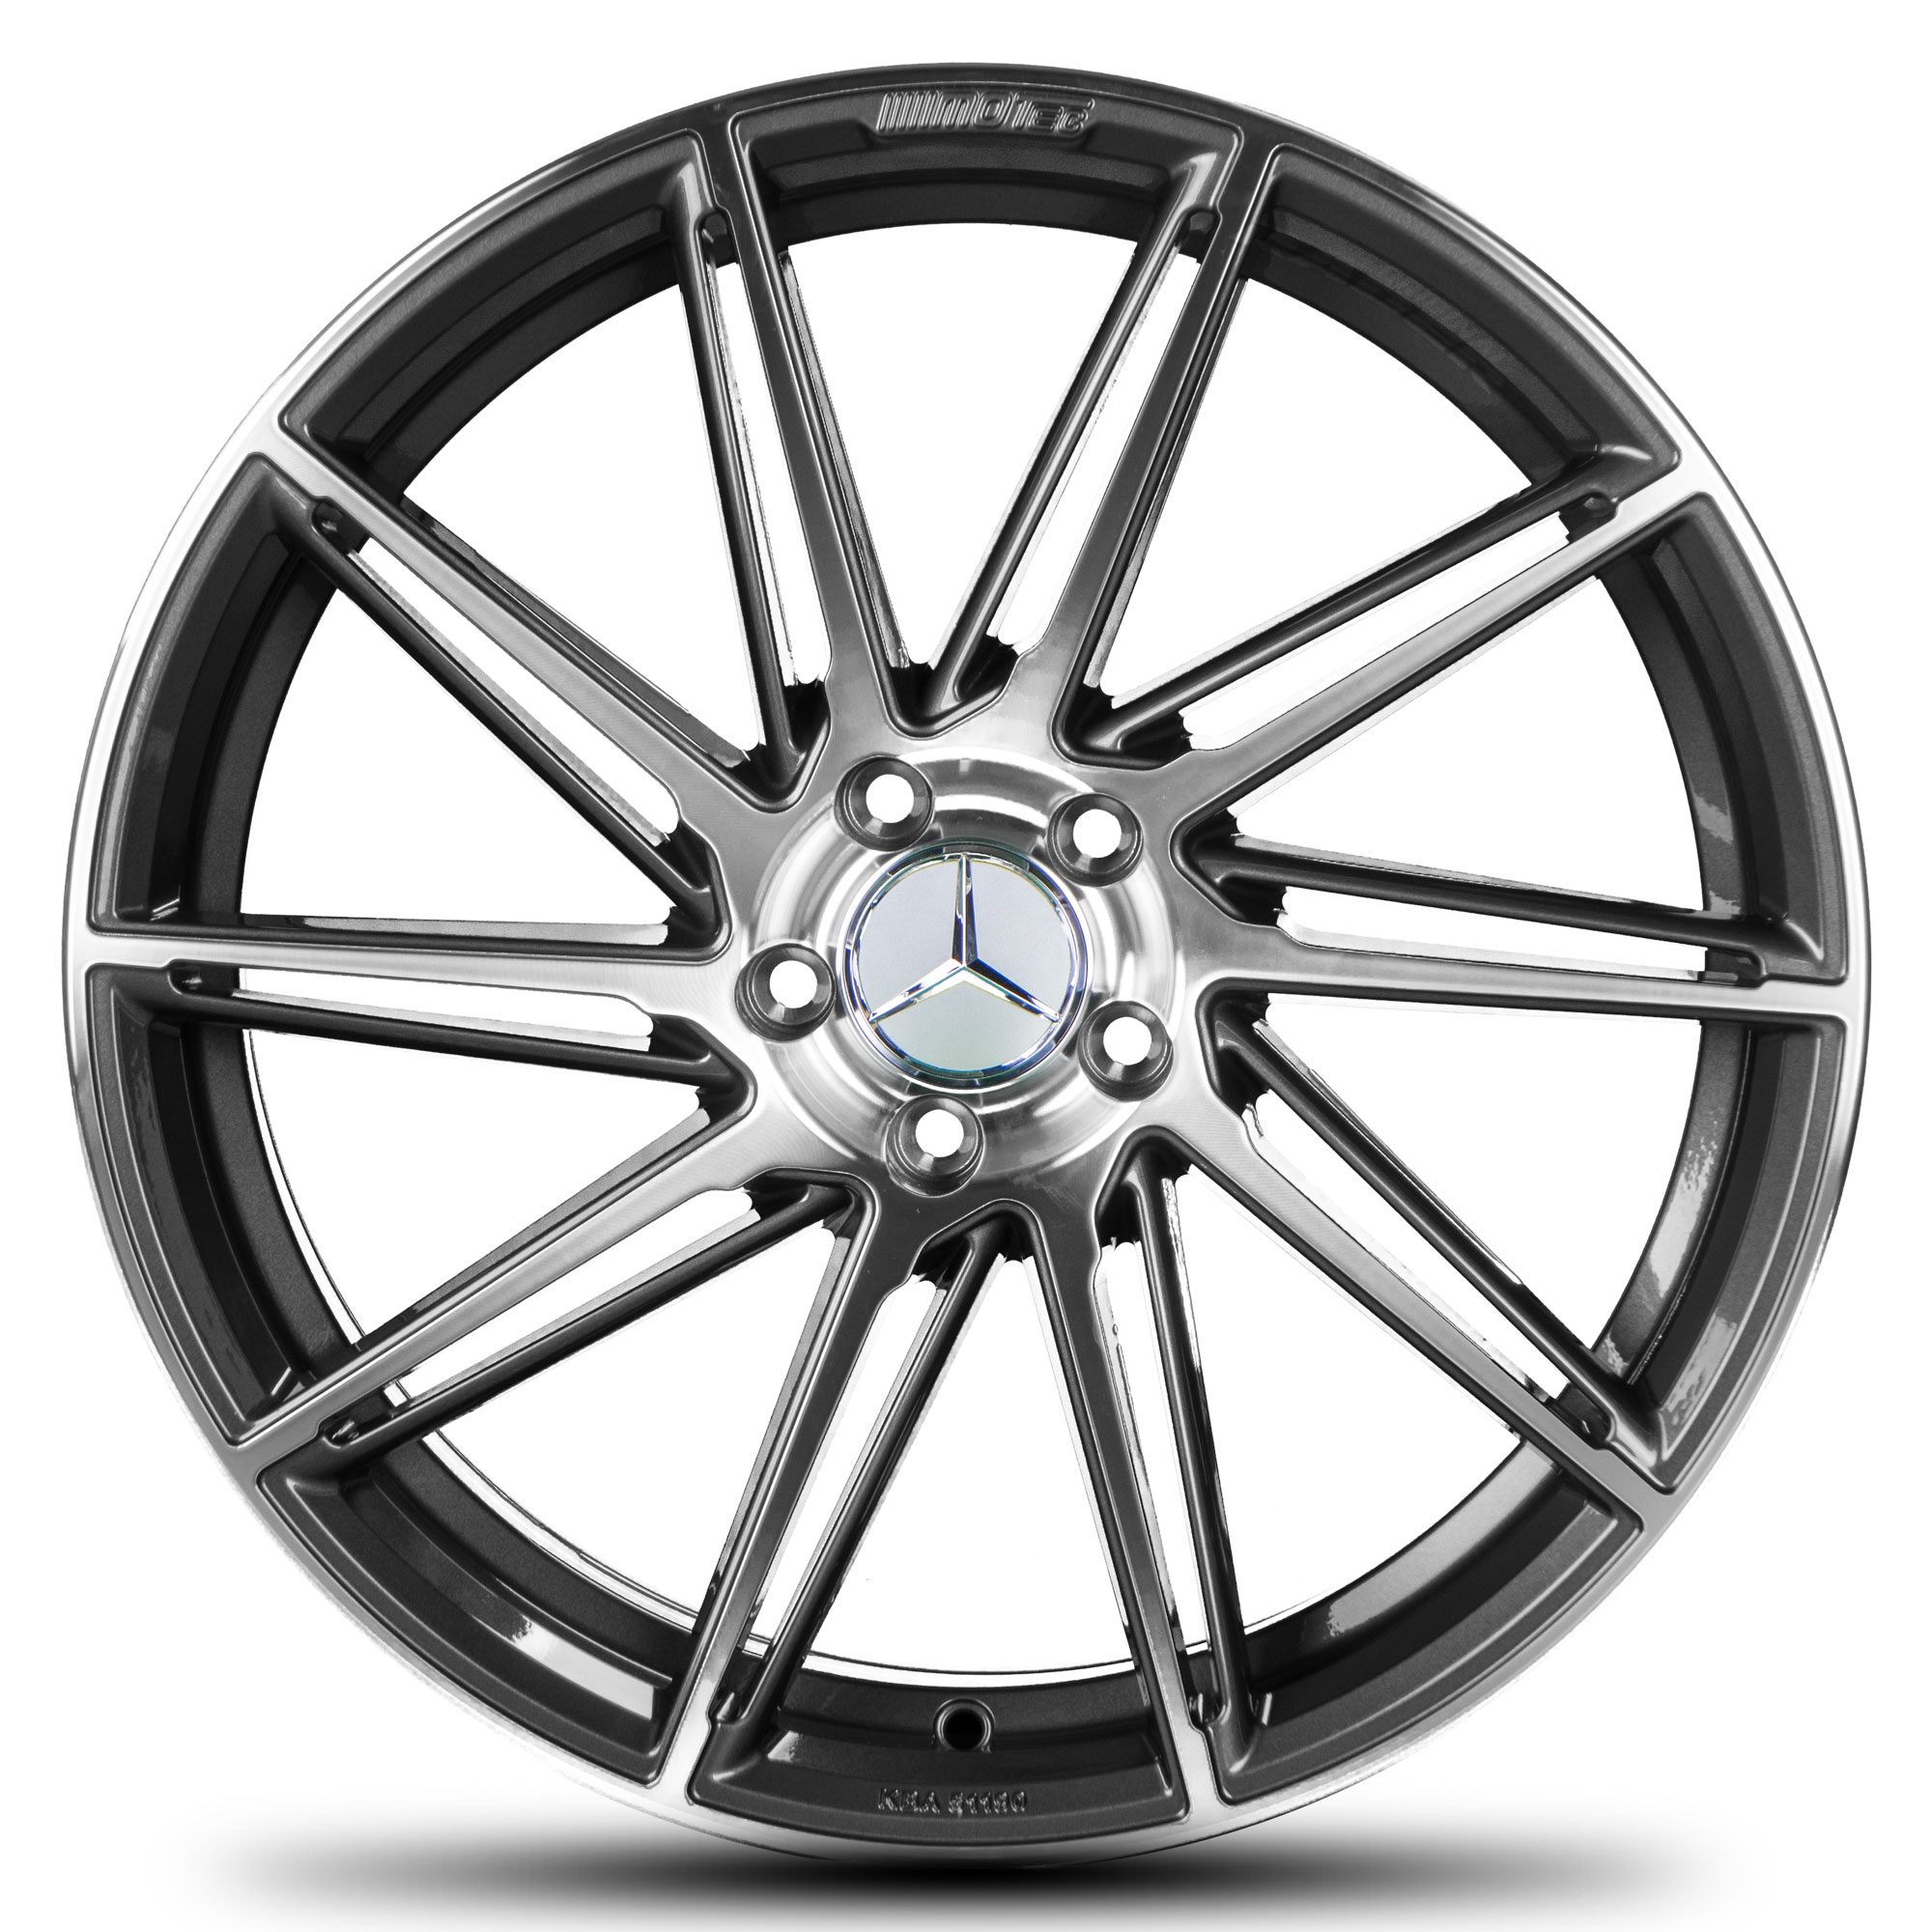 19 Inch Alloy Wheels For Mercedes Benz A B C E Cls Class